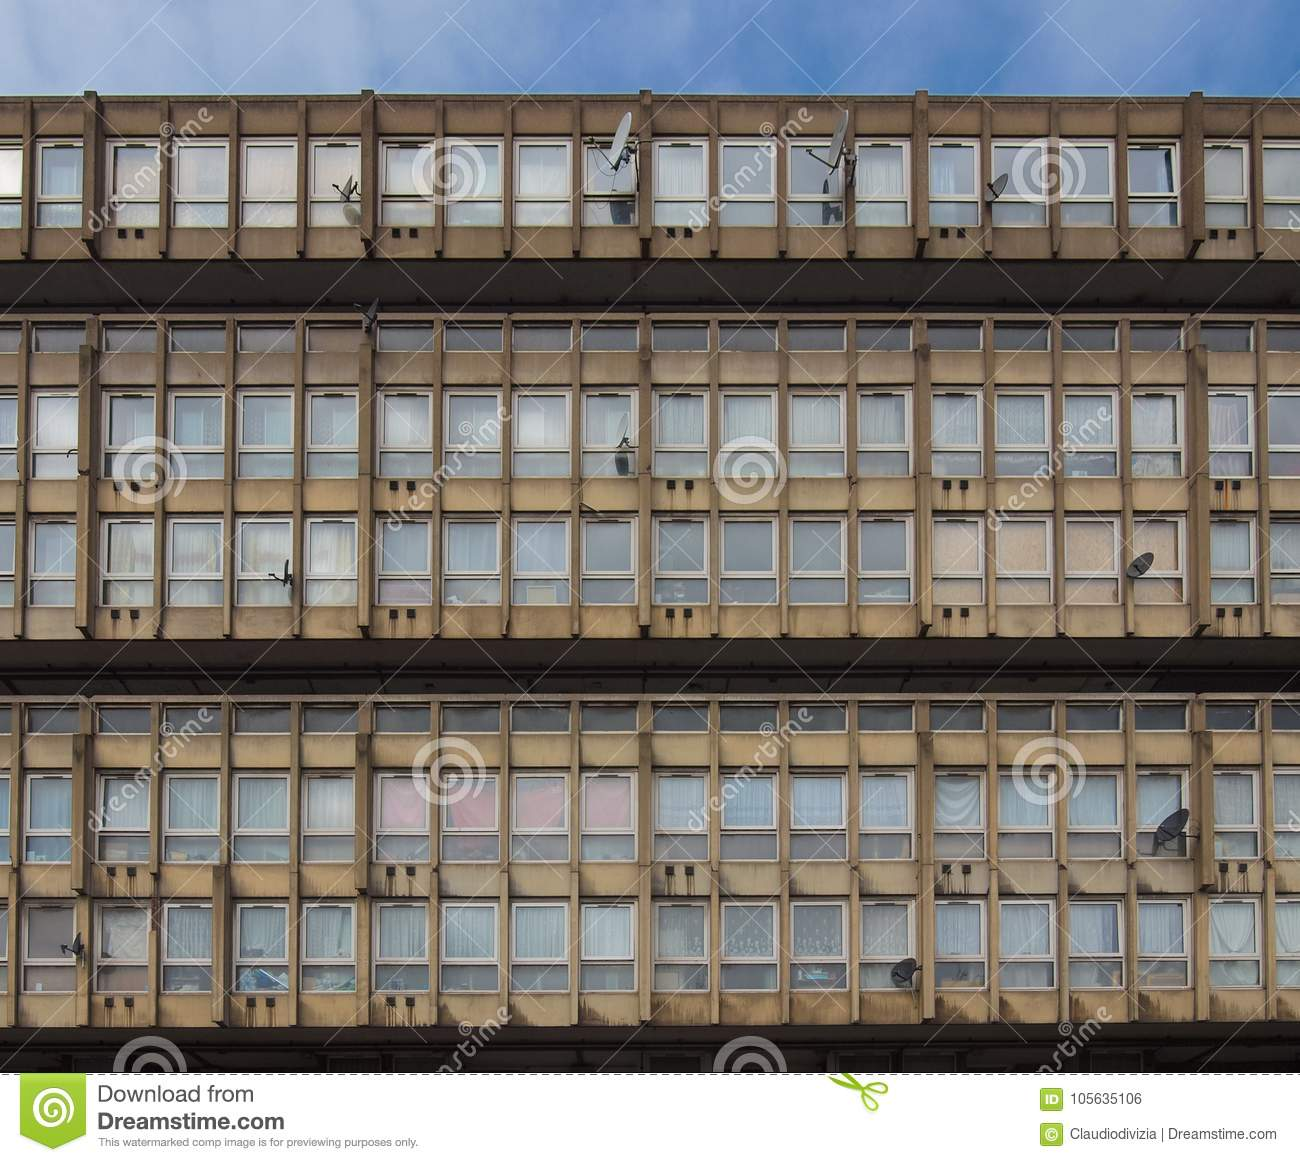 Robin Hood Gardens In London Stock Photo - Image of england, britain